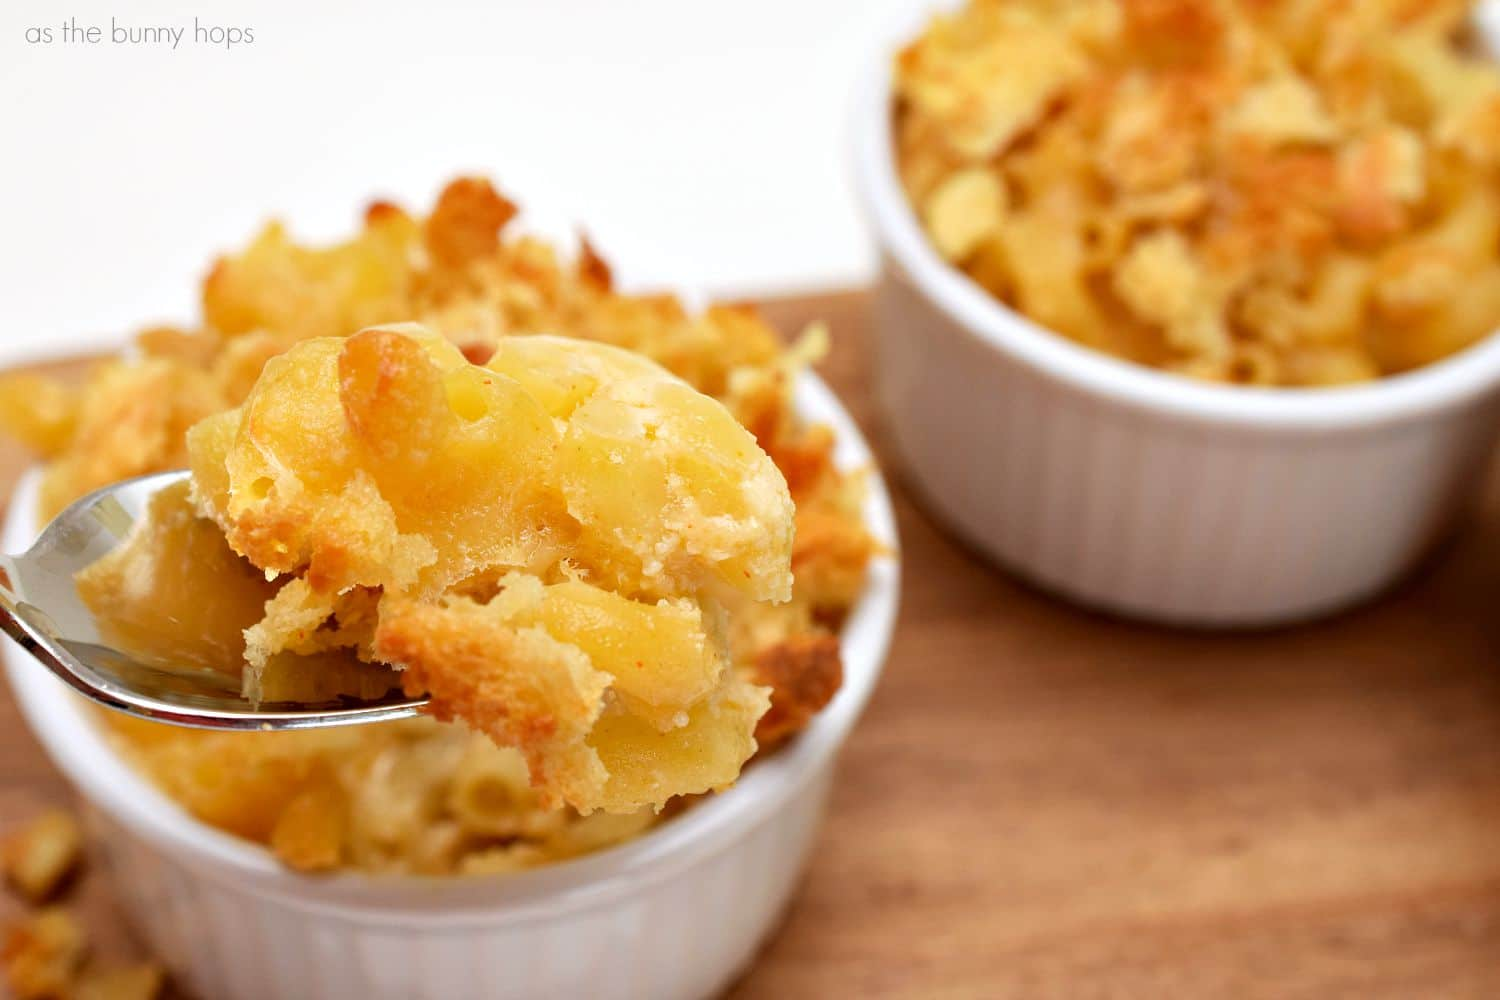 The Best Baked Gourmet Mac and Cheese Ever  As The Bunny